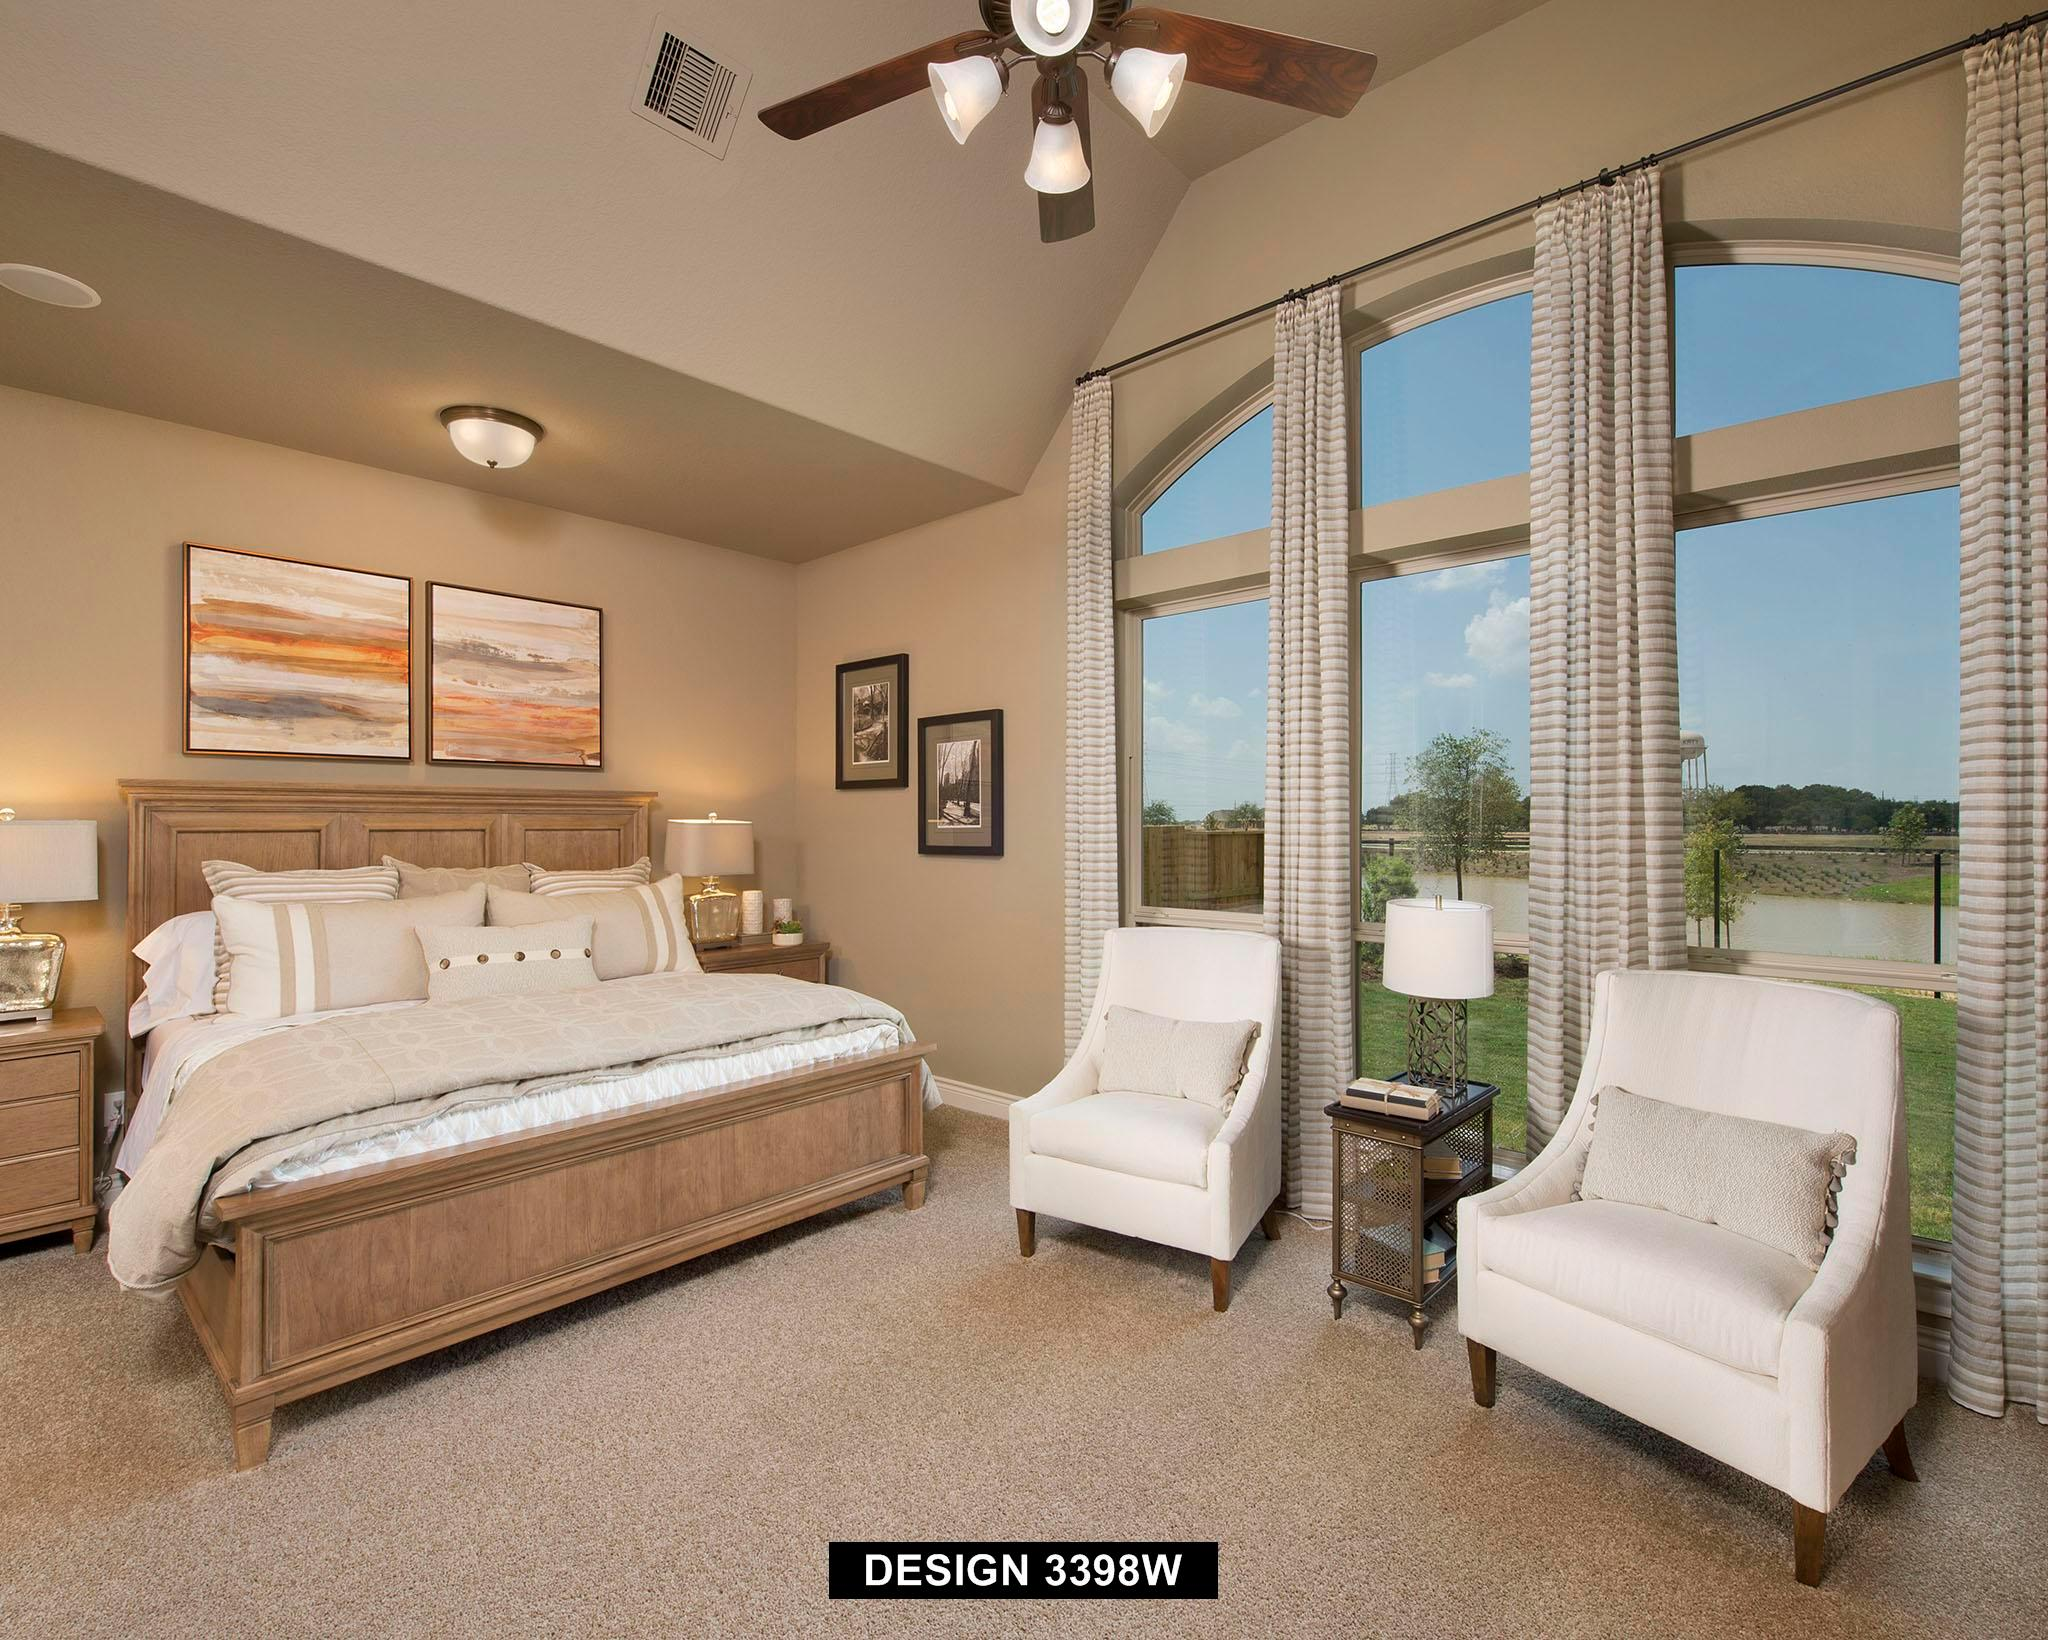 Bedroom featured in the 3398W By Perry Homes in Houston, TX